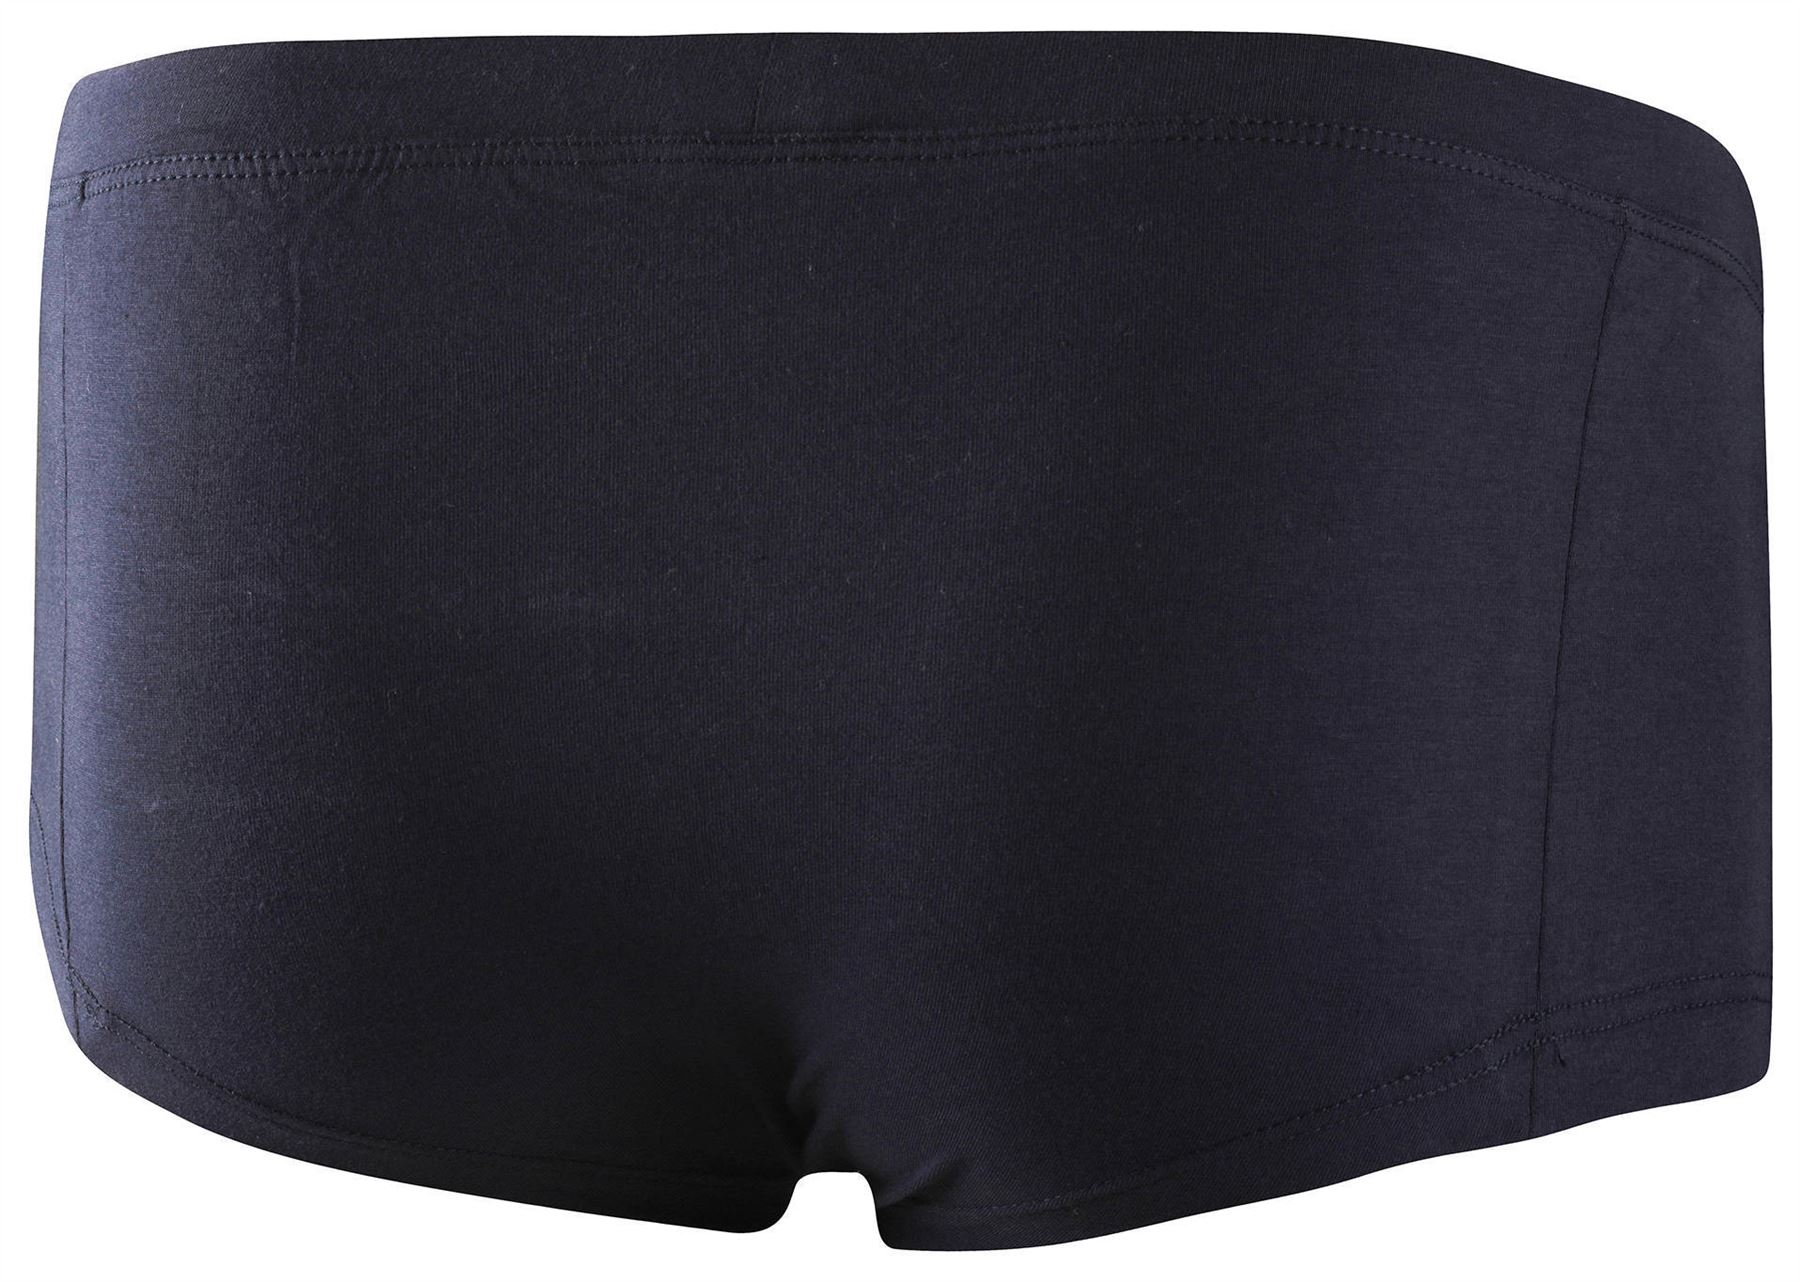 Doreanse-1750-Adonis-Anatomical-Trunk-Supportive-Enhancing-Men-039-s-underwear miniatura 3